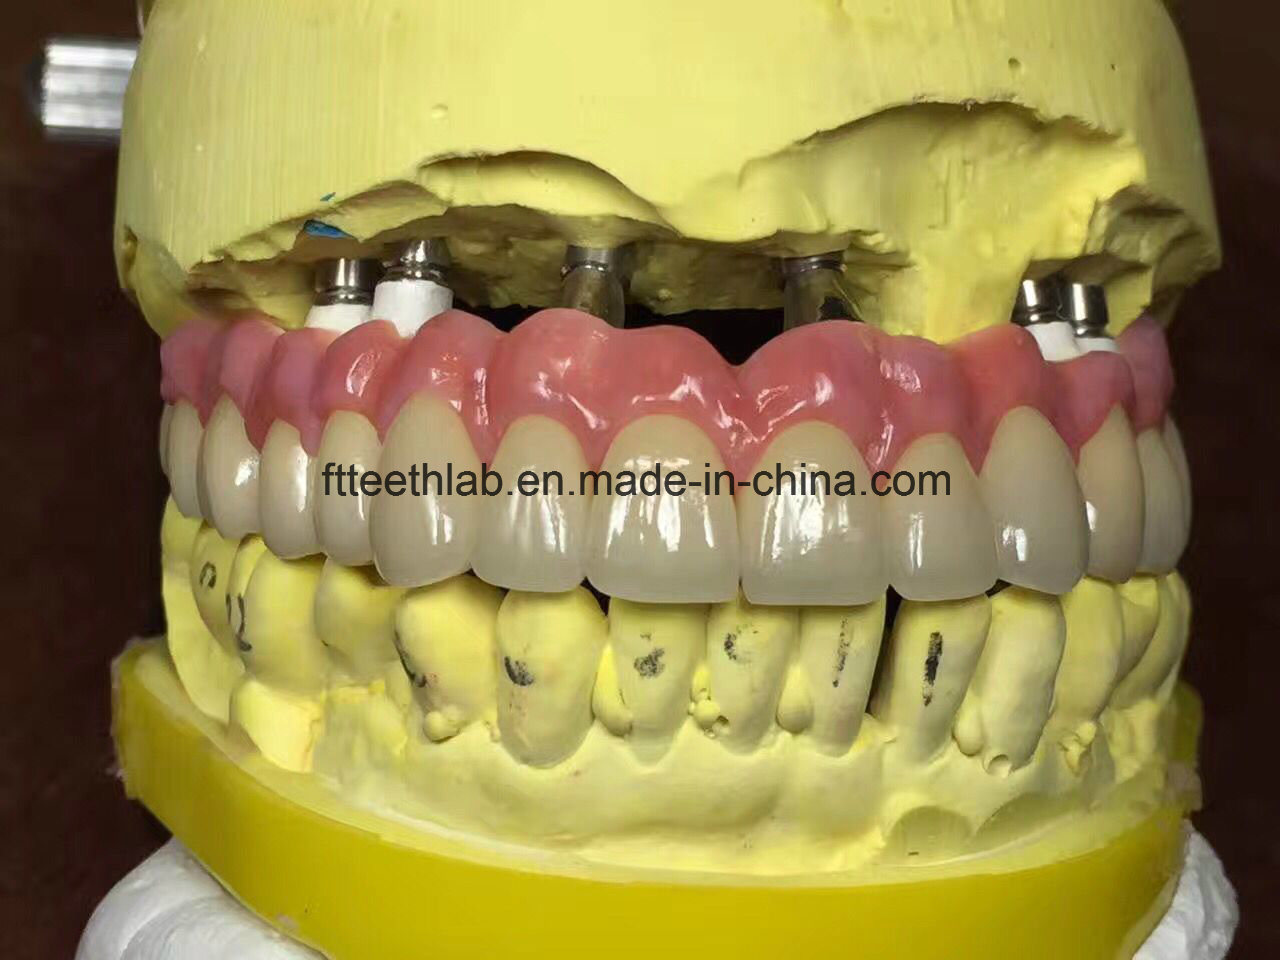 Long Zirconia Bridge Supported by Implants